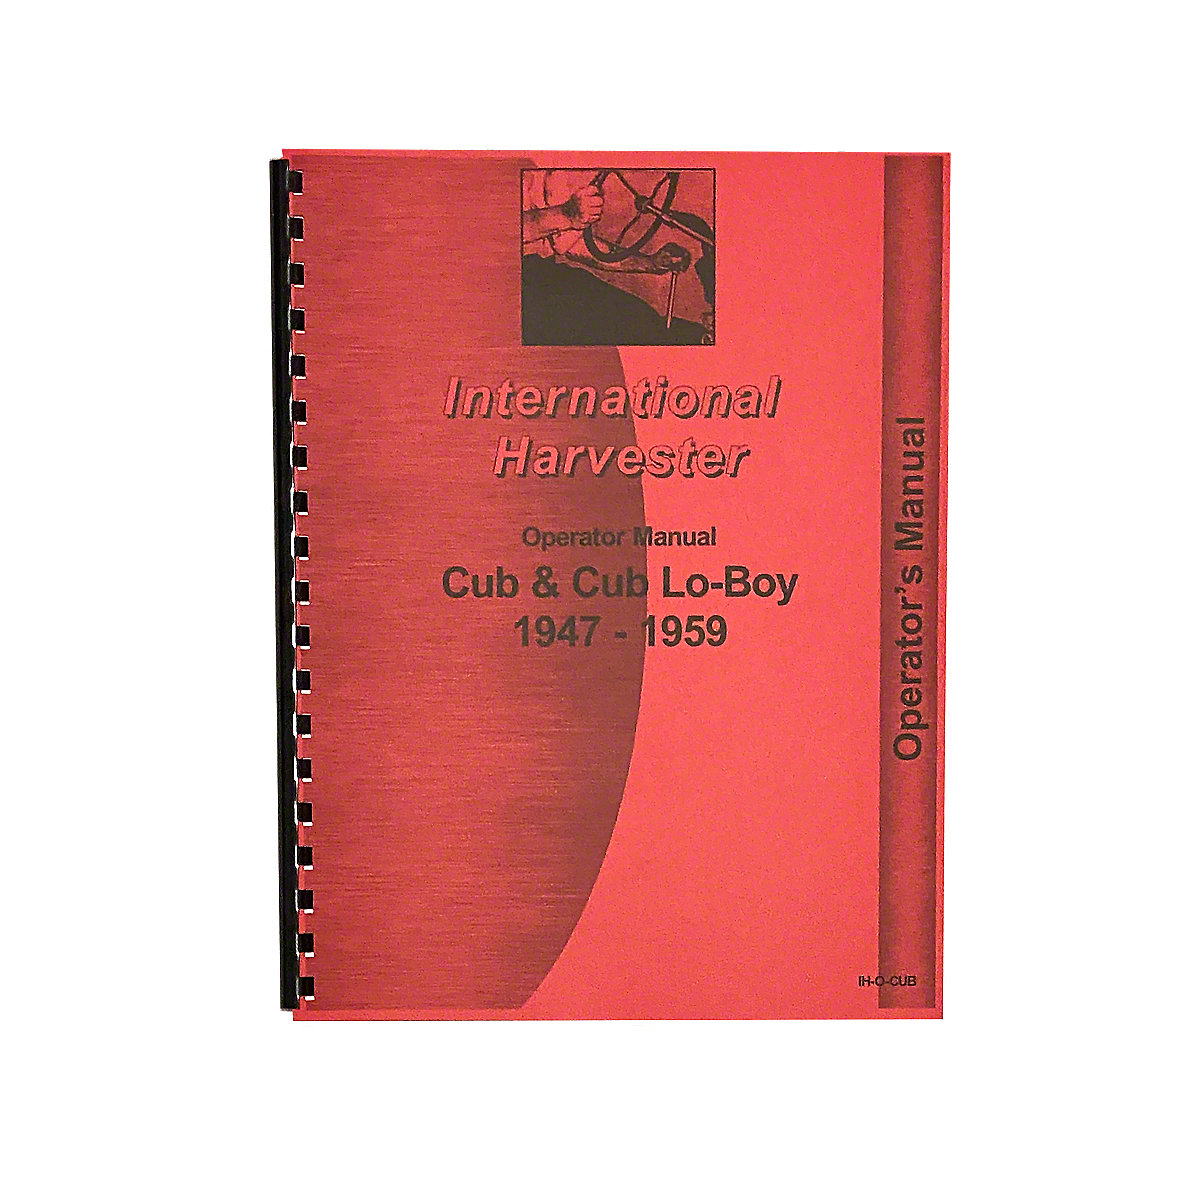 Farmall Cub Diagram Electrical Schematics 1975 International Wiring Schematic Rep081 Operators Manual Firing Order